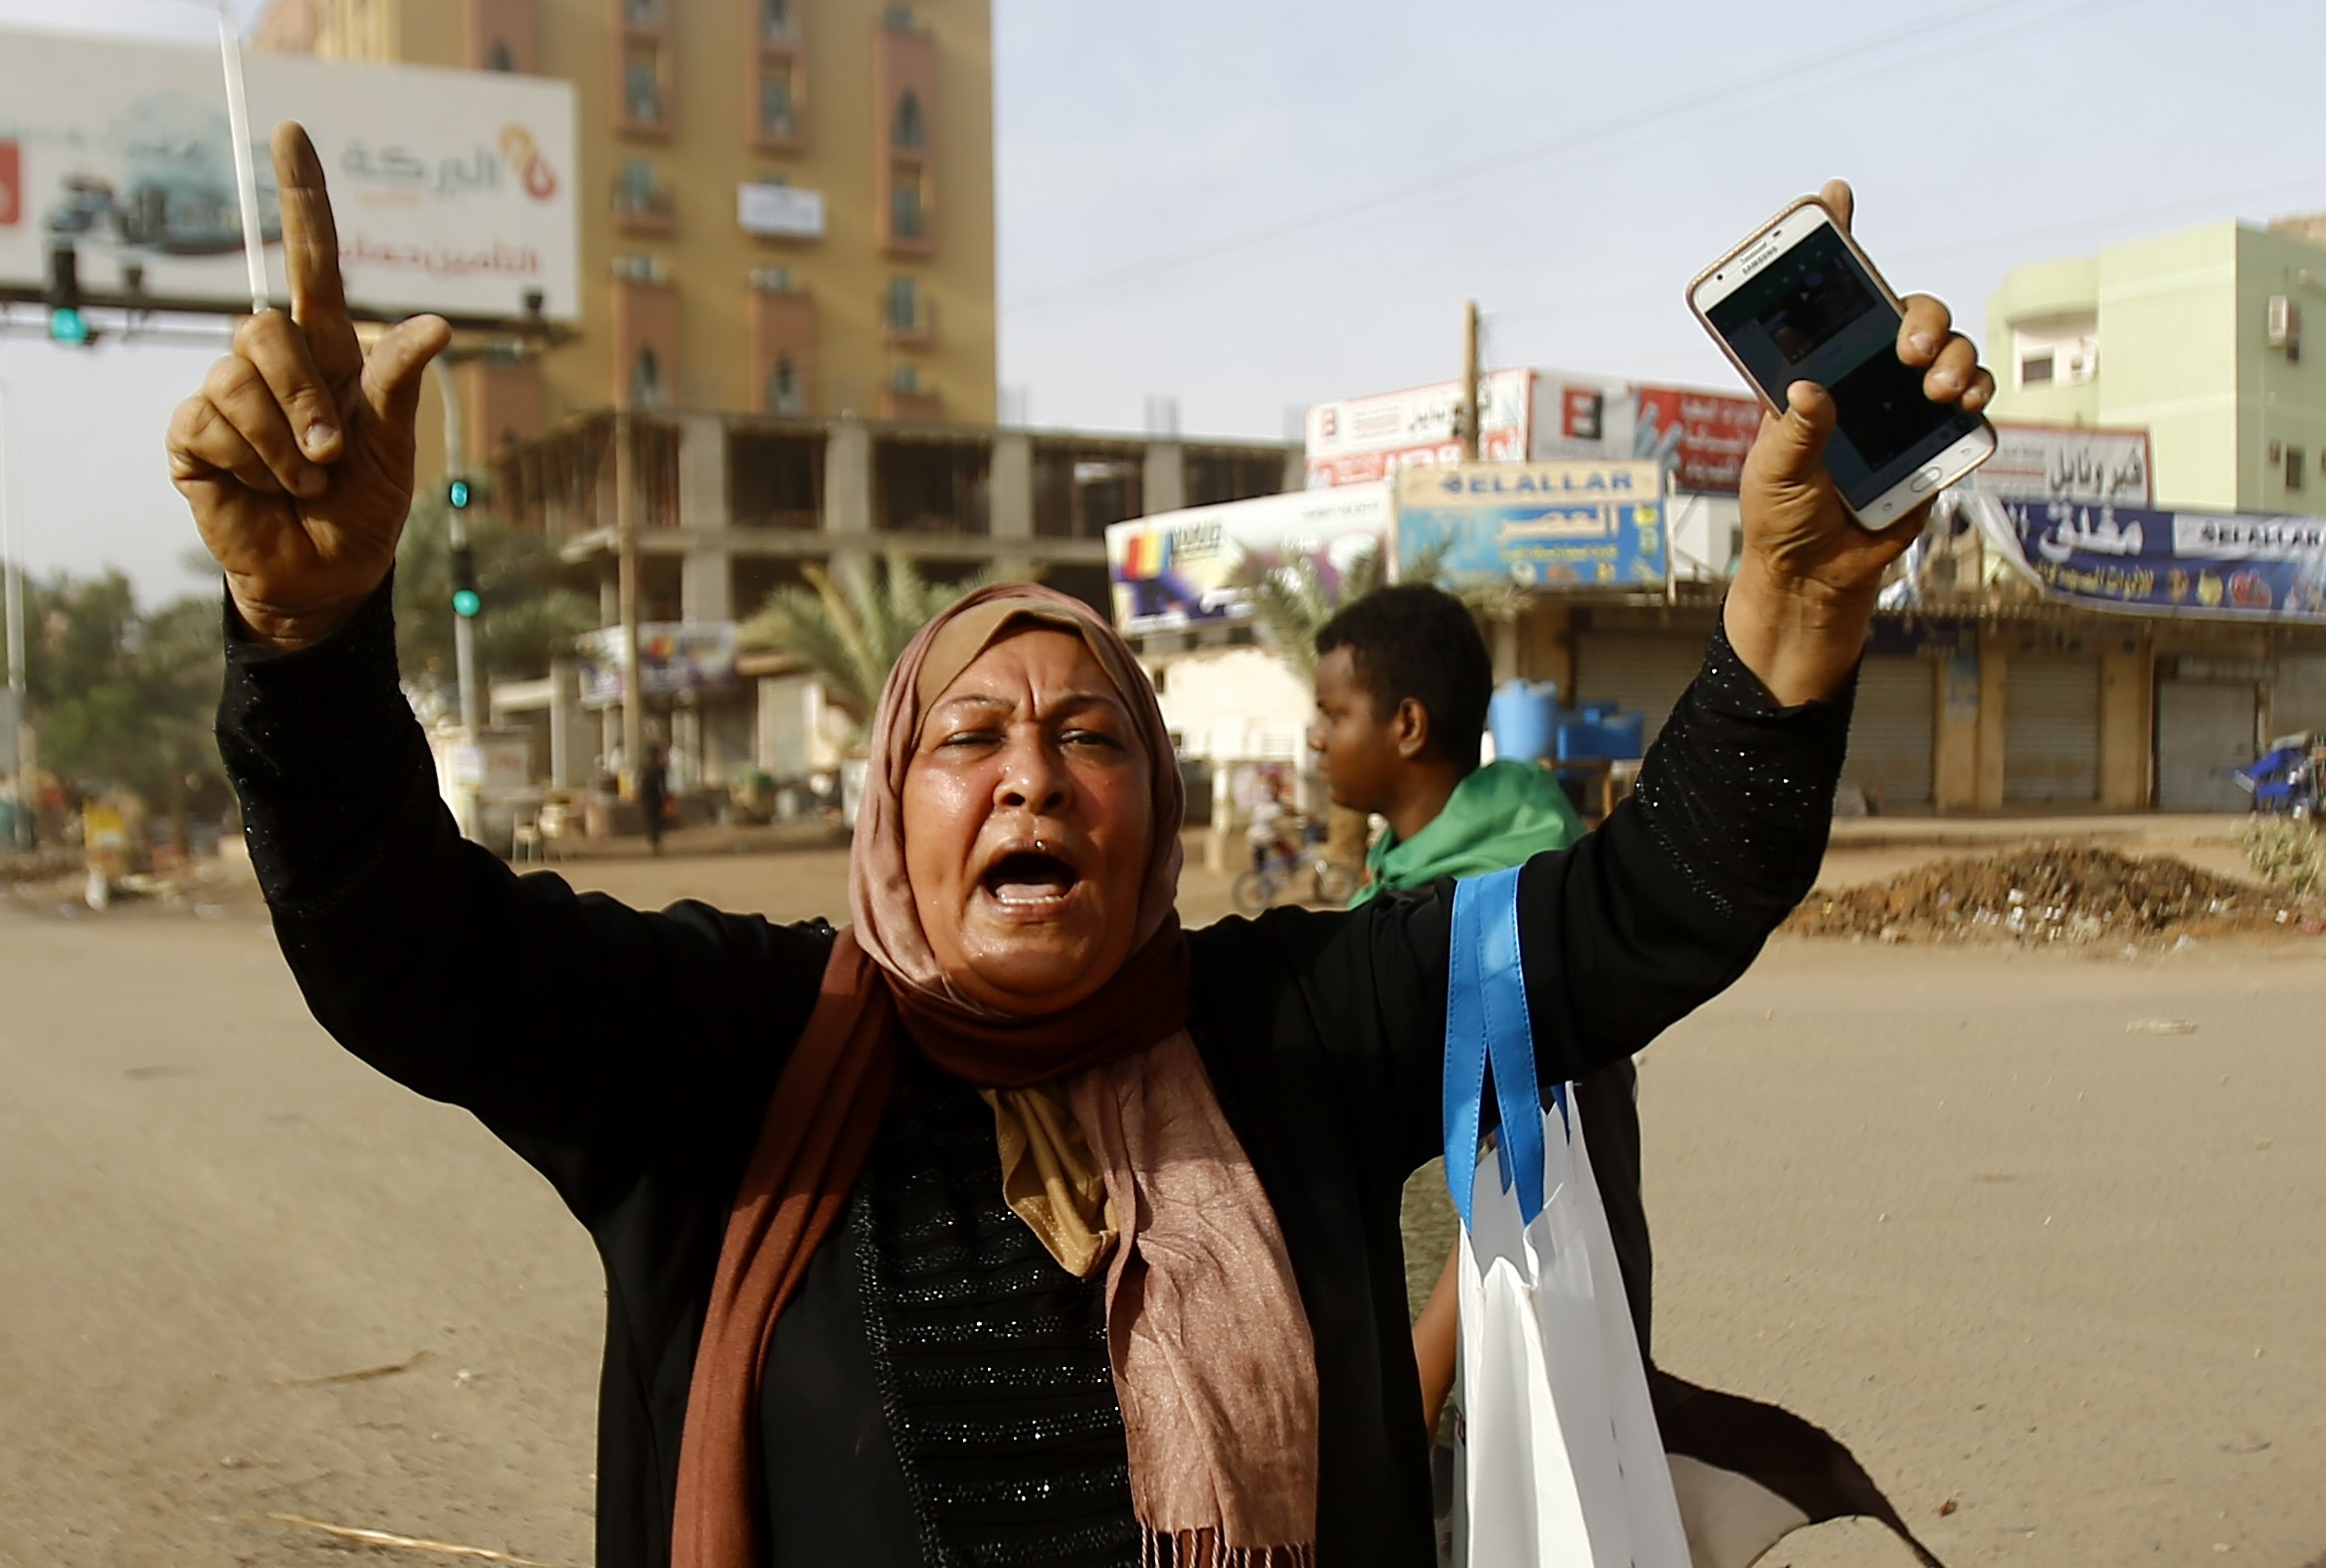 A Sudanese protester reacts as military forces tried to disperse a sit-in outside Khartoum's army headquarters on 3 June (AFP)